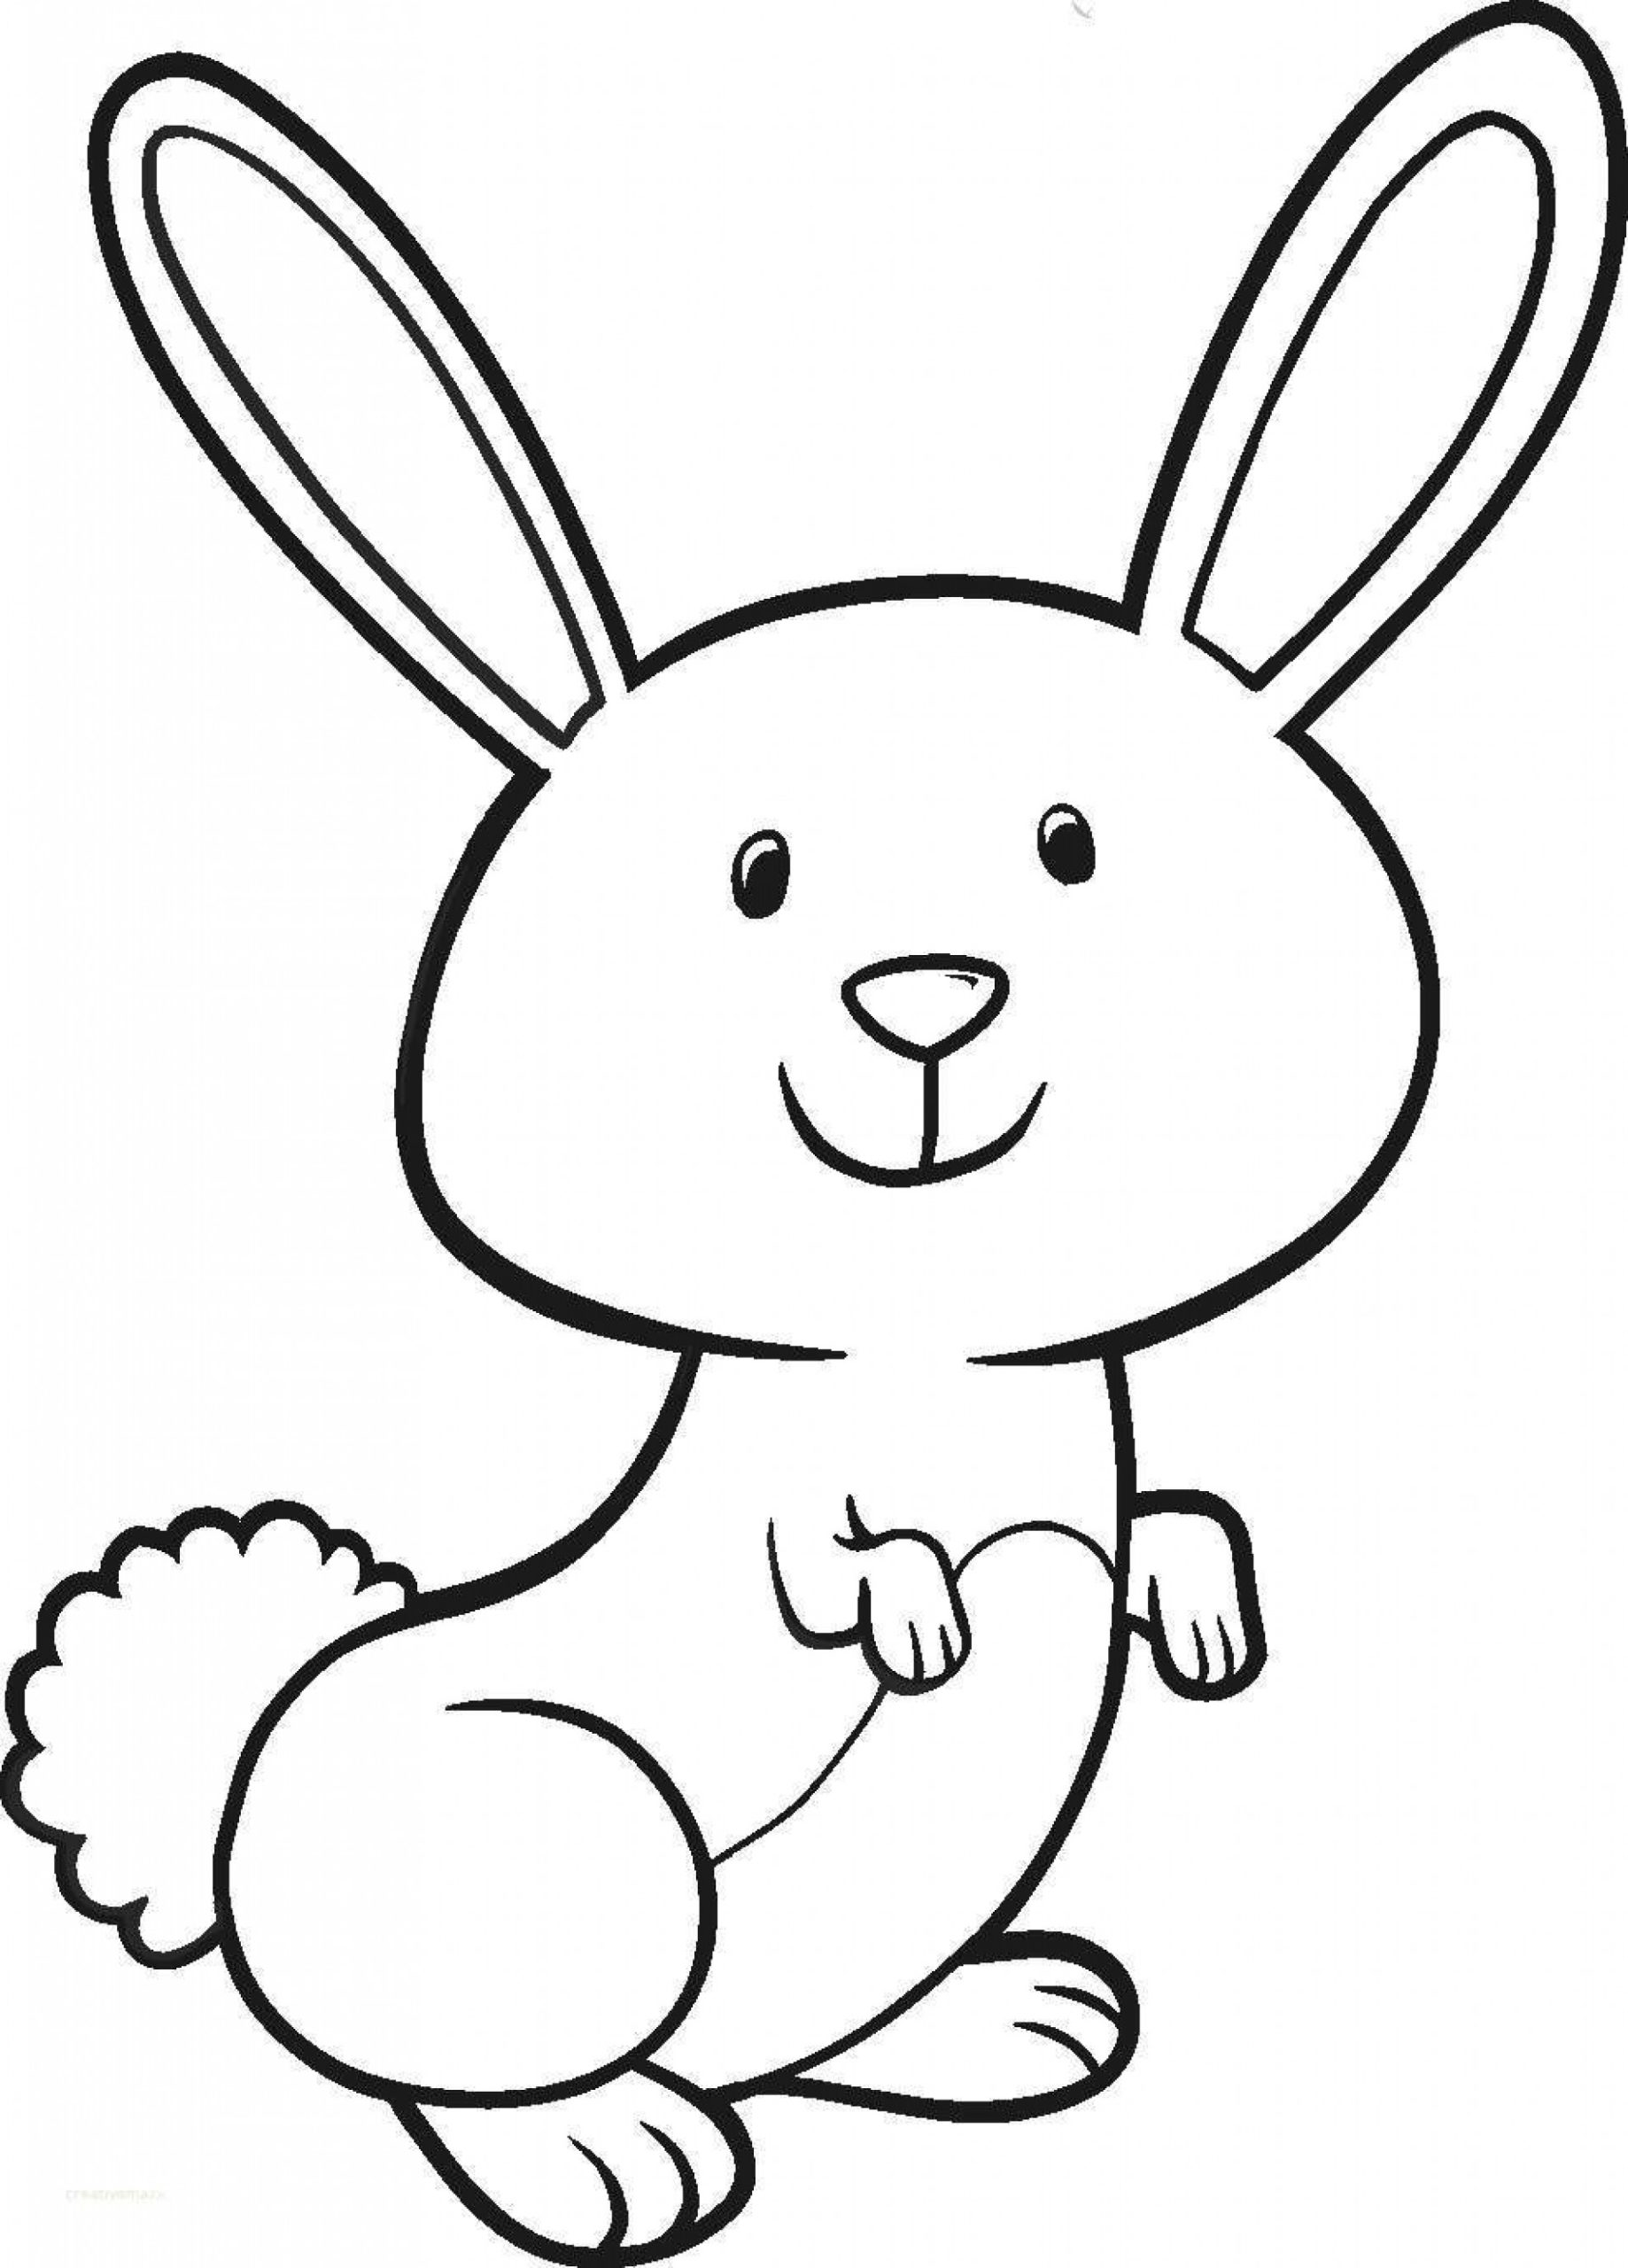 bunny picture to color free printable rabbit coloring pages for kids picture to bunny color